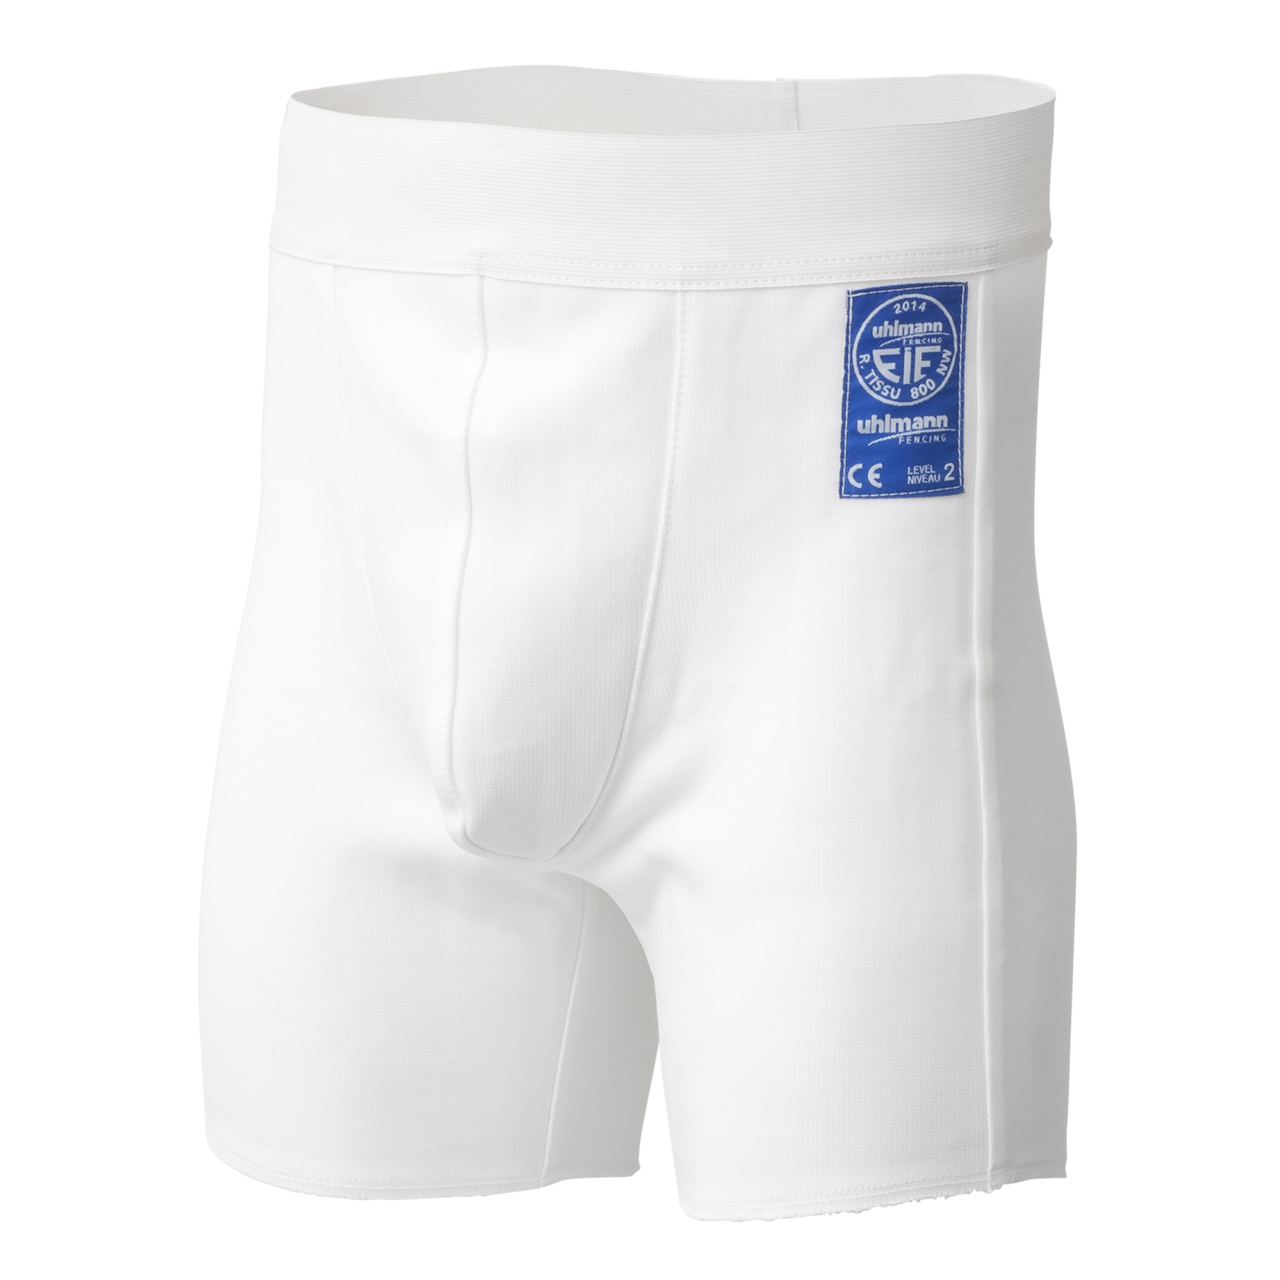 protection shorts men 800N